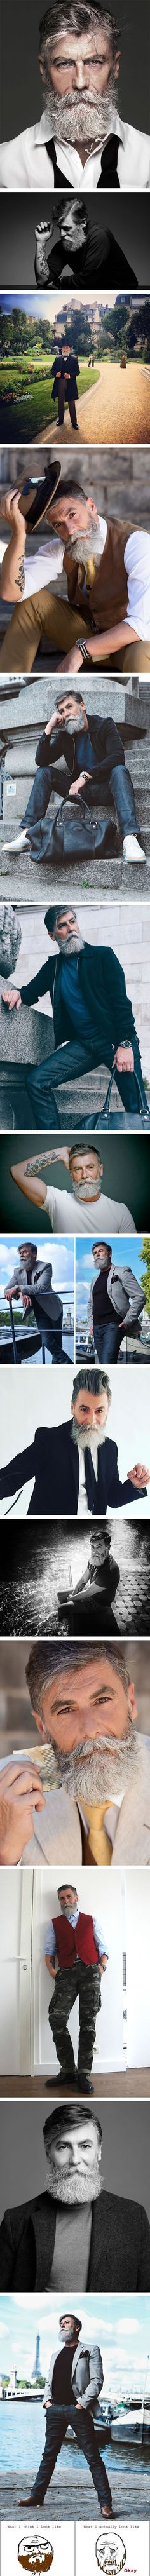 60-Year-Old Man Becomes A Fashion Model After Growing A Beard